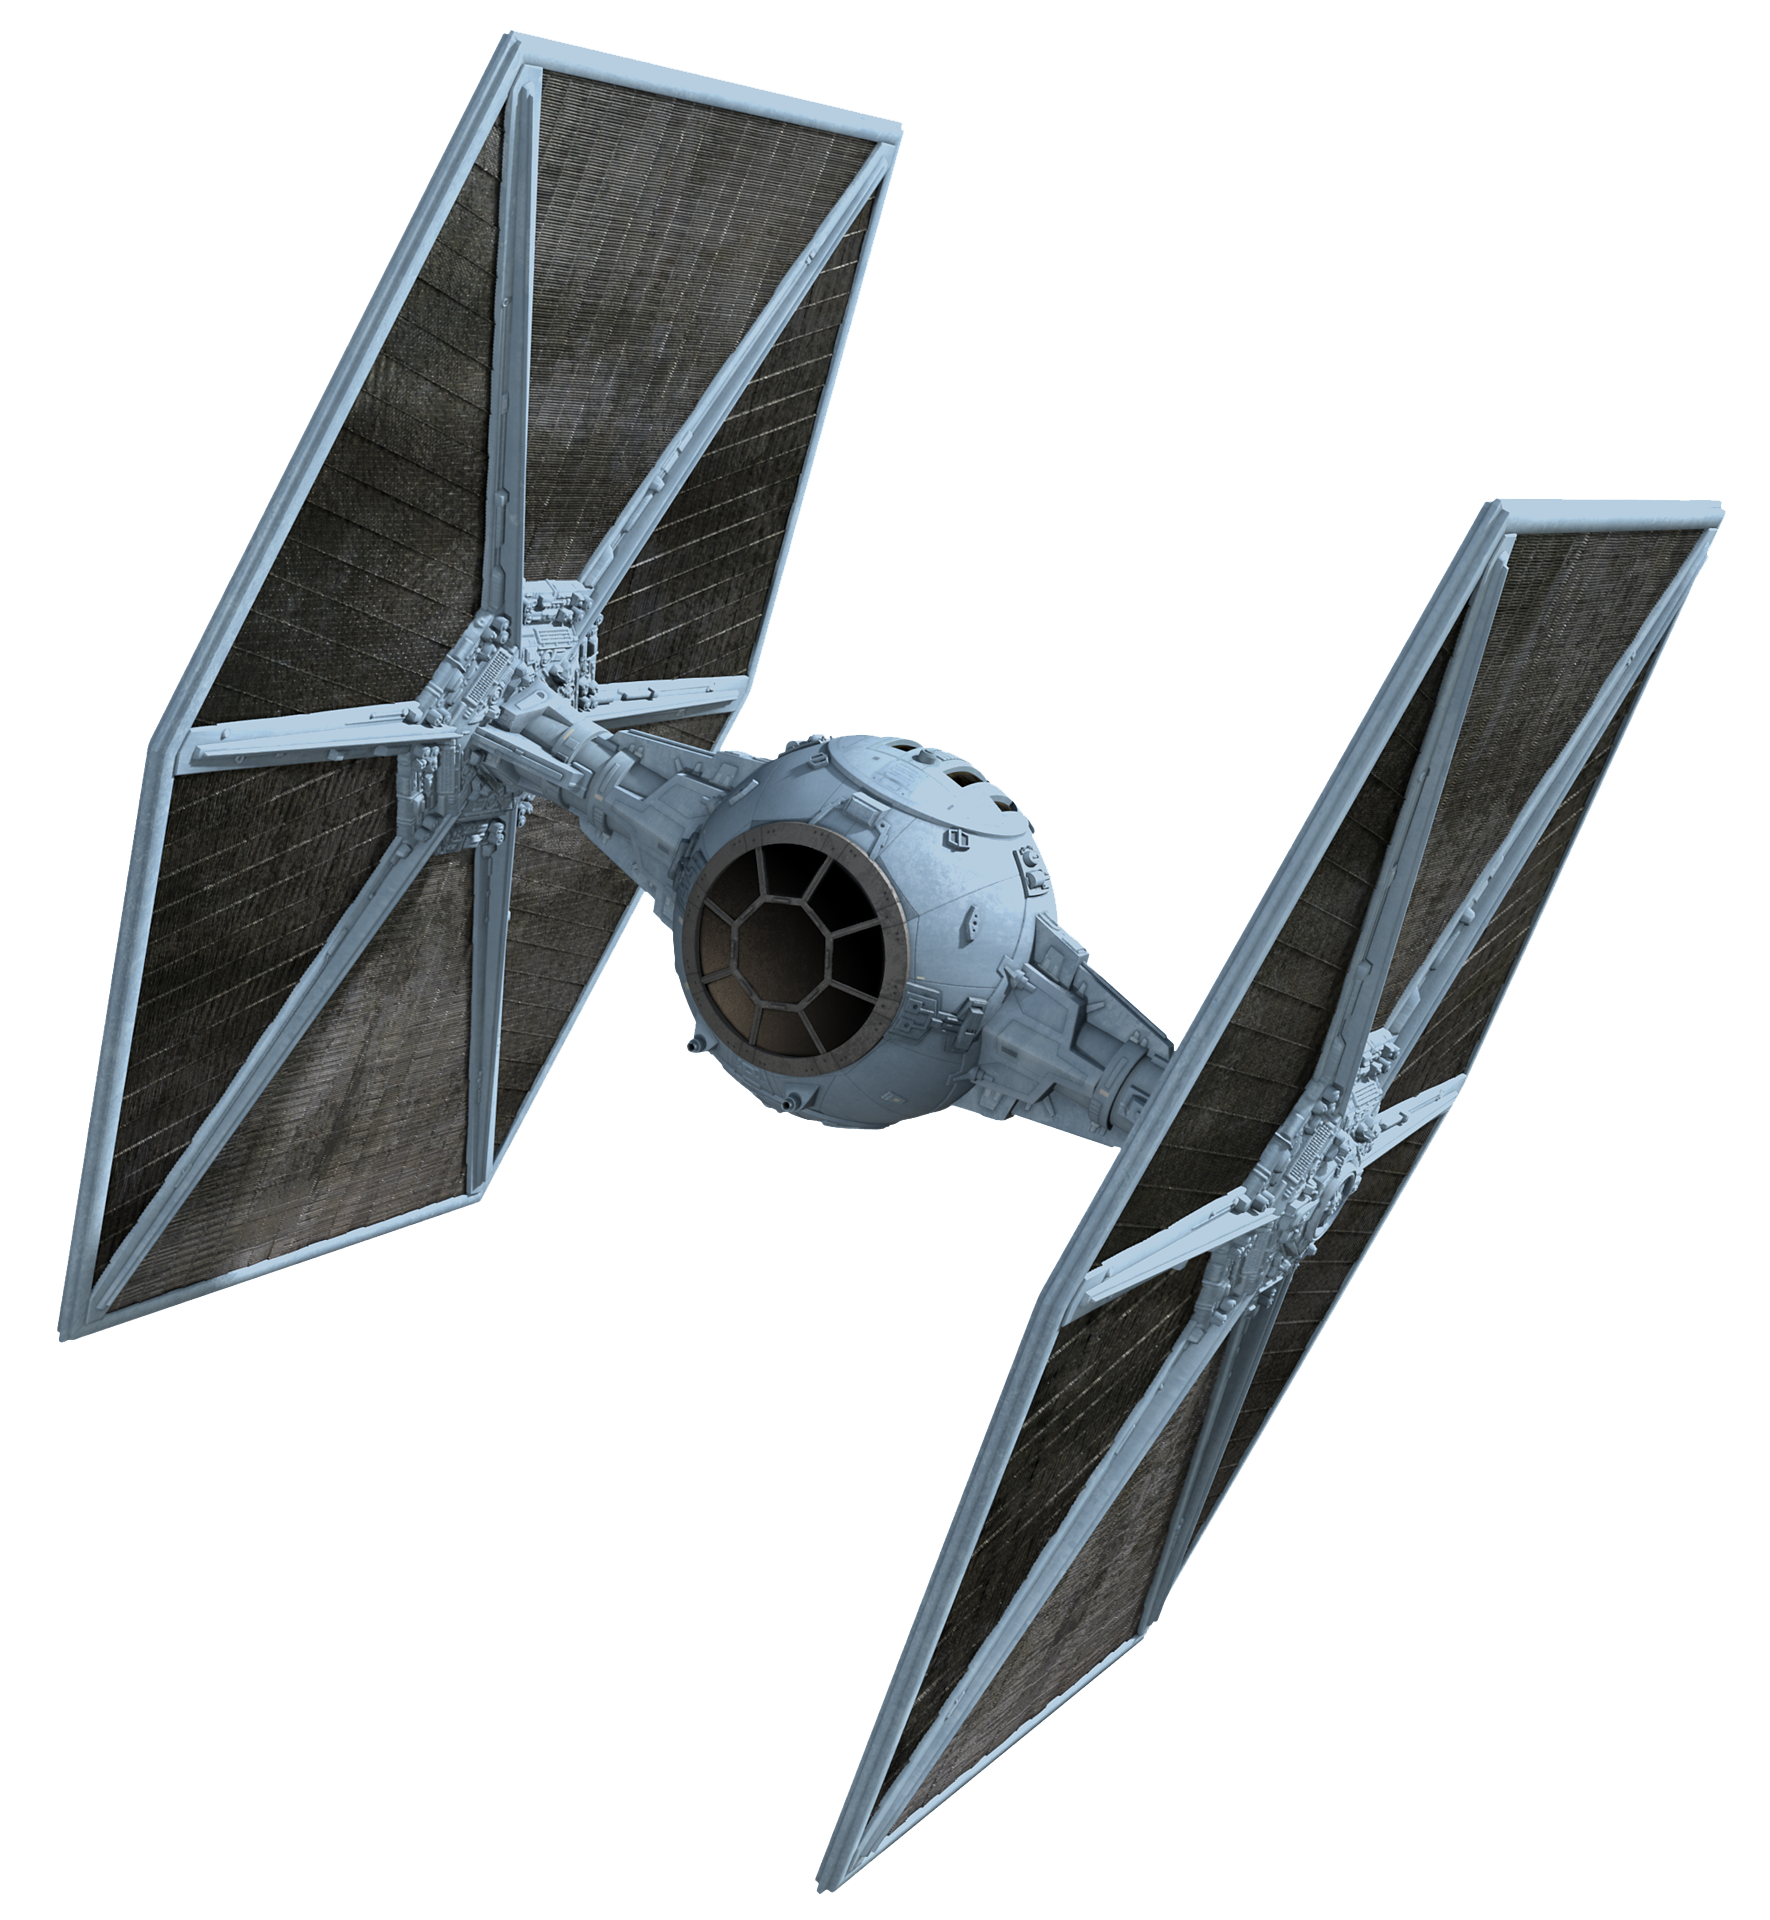 Star wars tie fighter clipart clip art transparent library Gift Guide - Kansas State University clip art transparent library